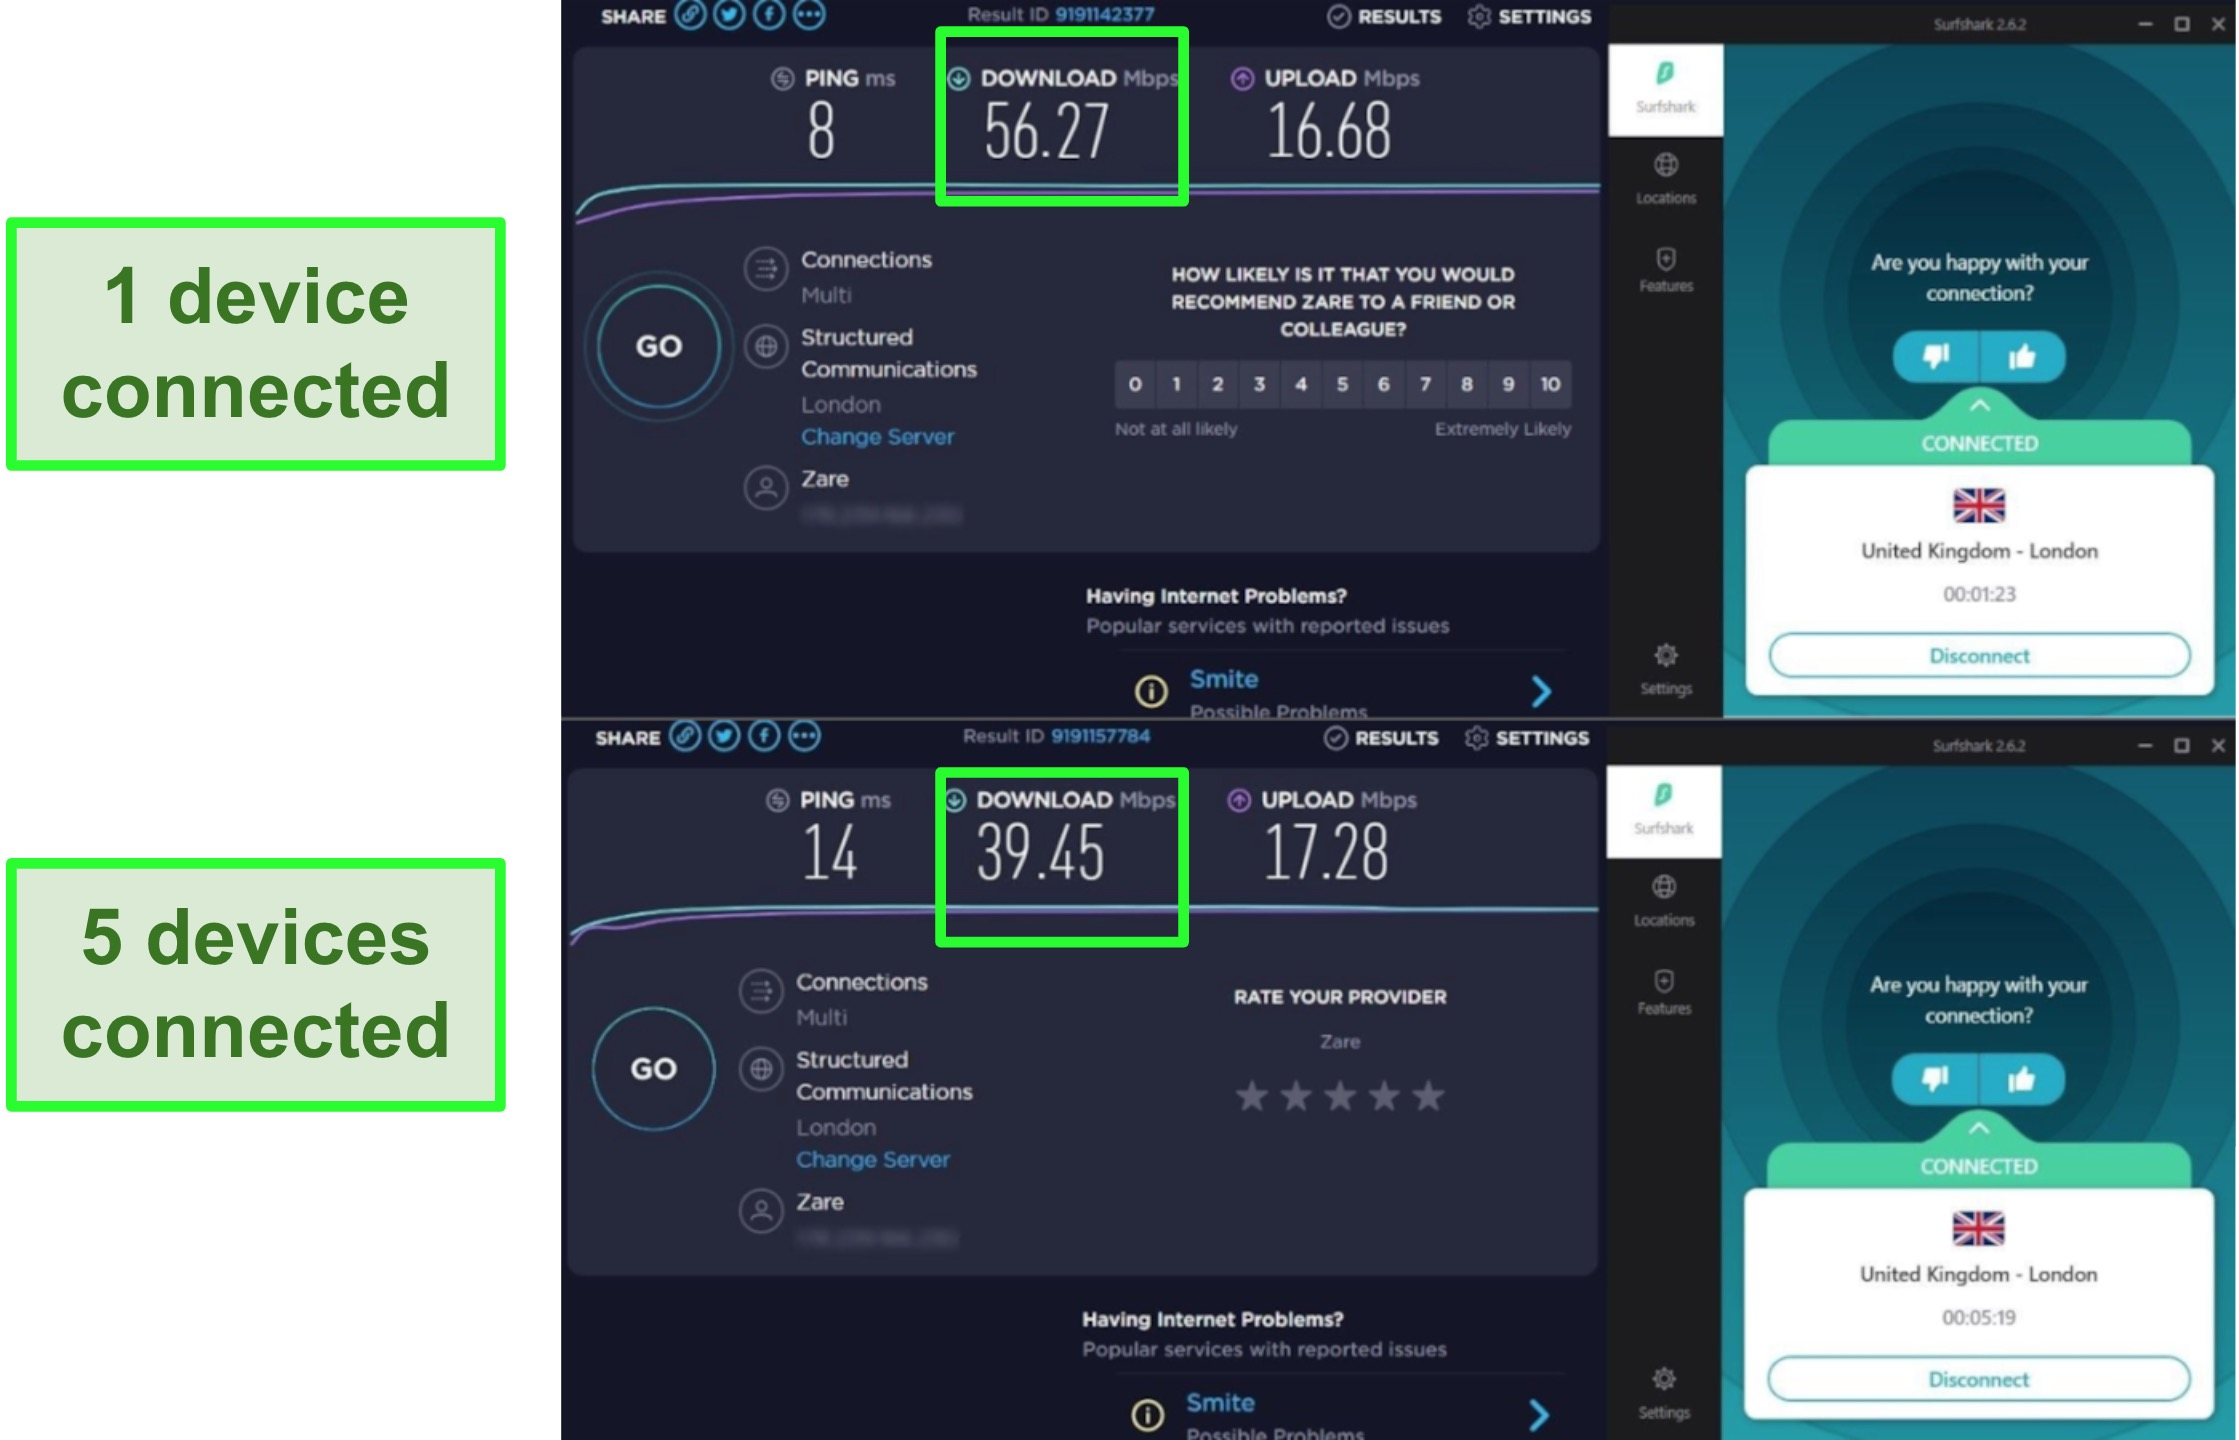 surfshark speed test on ookla with 1 device and 5 devices